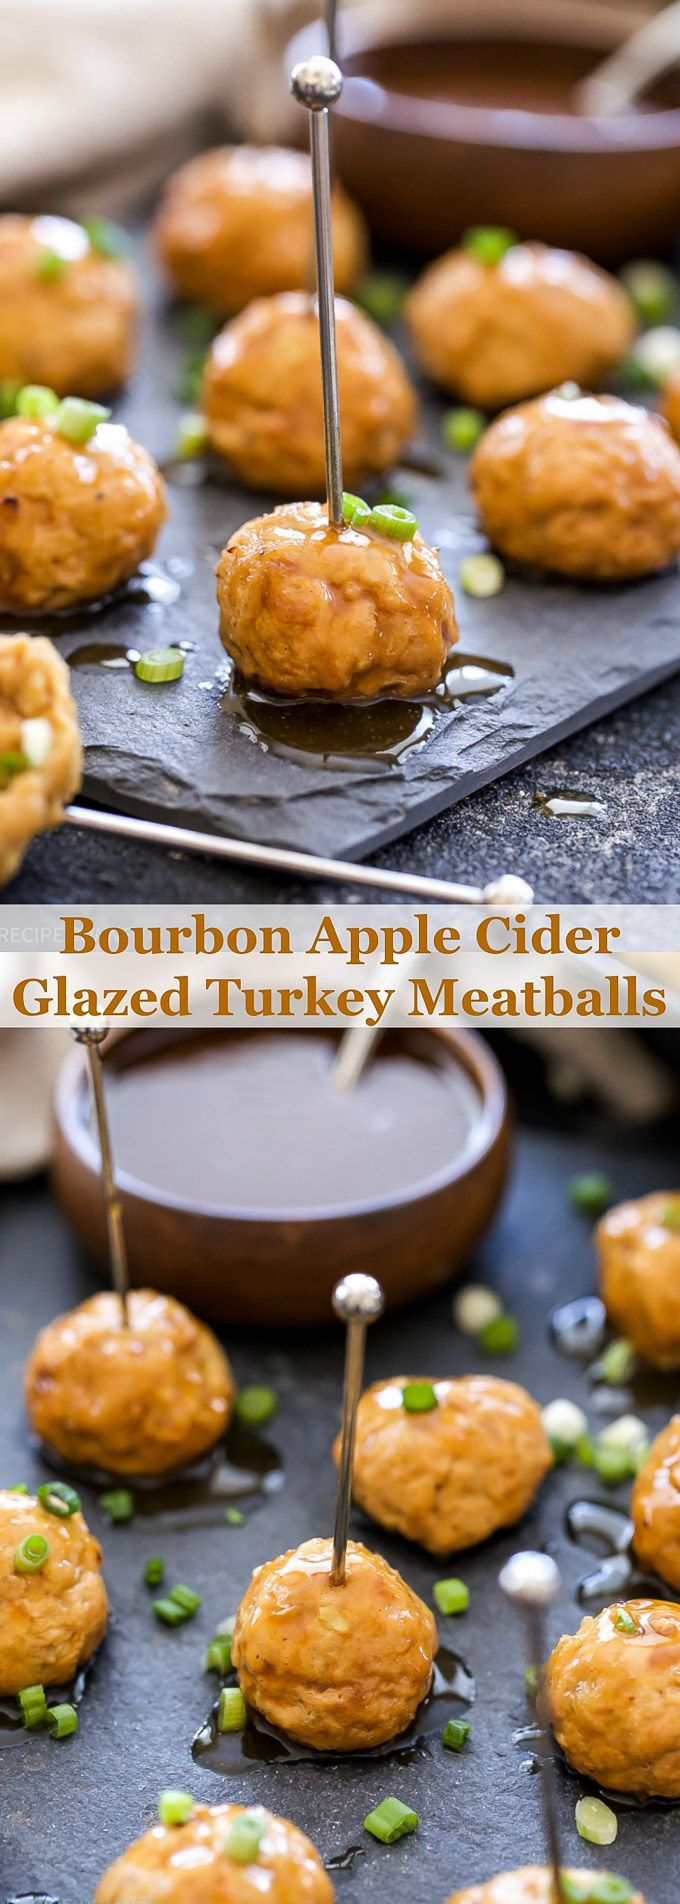 Apple cider makes a delicious sweet and savory glaze on these Bourbon Apple Cider Glazed Turkey Meatballs! They're a highly addicting appetizer or delicious weeknight dinner!